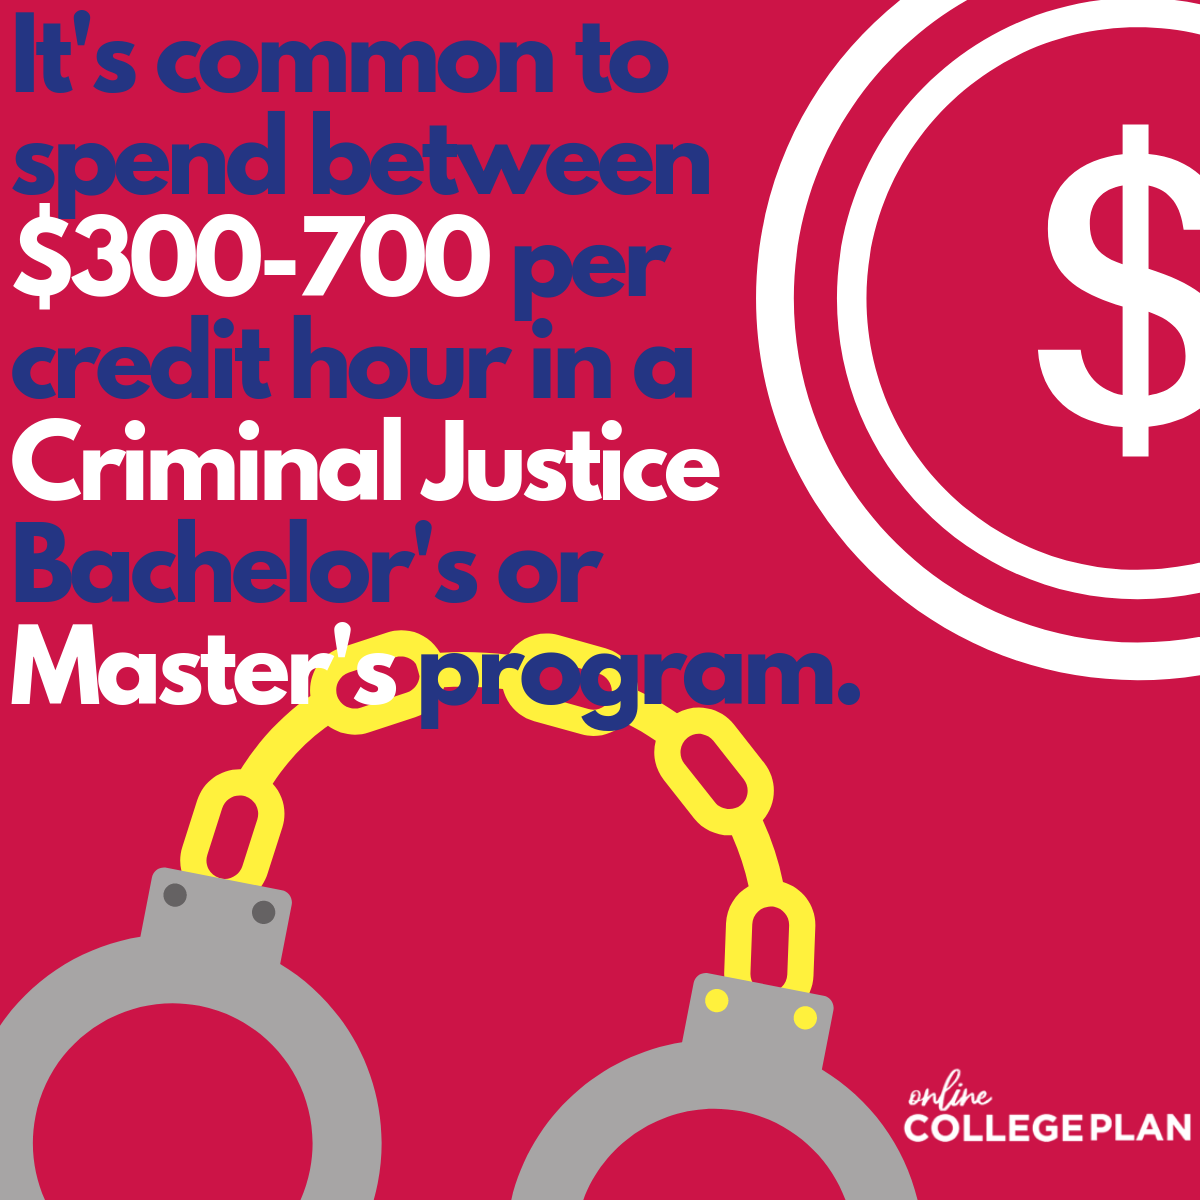 Online Criminal Justice Degrees